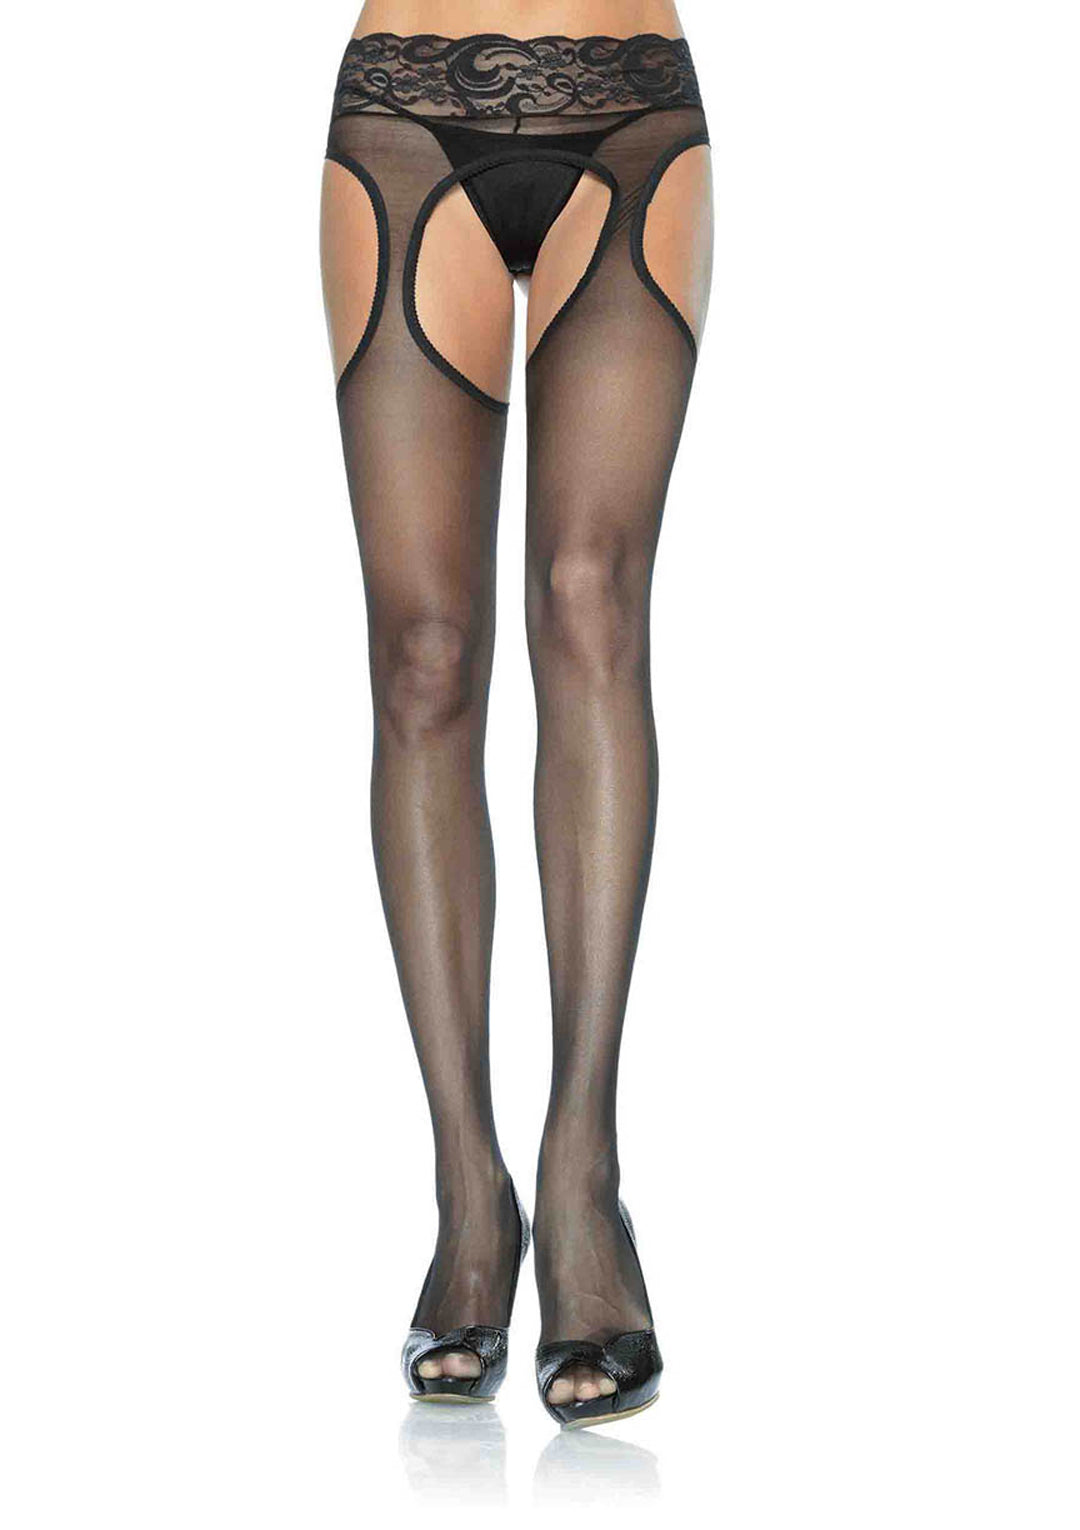 Sheer Suspender Hose with Lace Waist